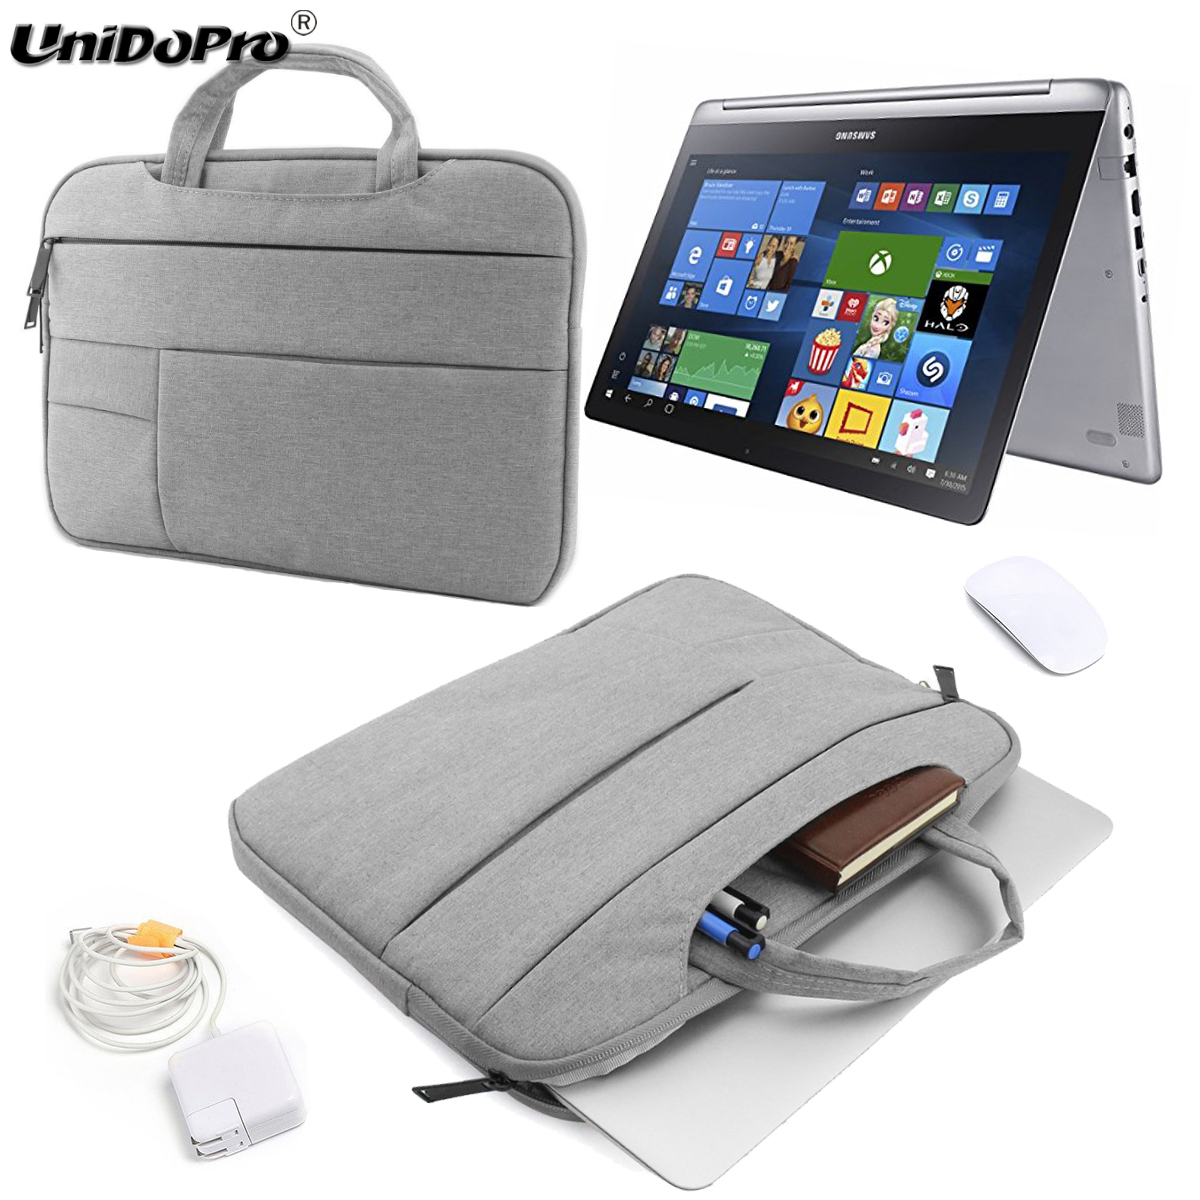 UNIDOPRO 11.6 12 13 13.3 14 15 Laptop Sleeve Handbag for Samsung Chromebook Plus Convertible Notebook Bag XE513C24-K01US Case